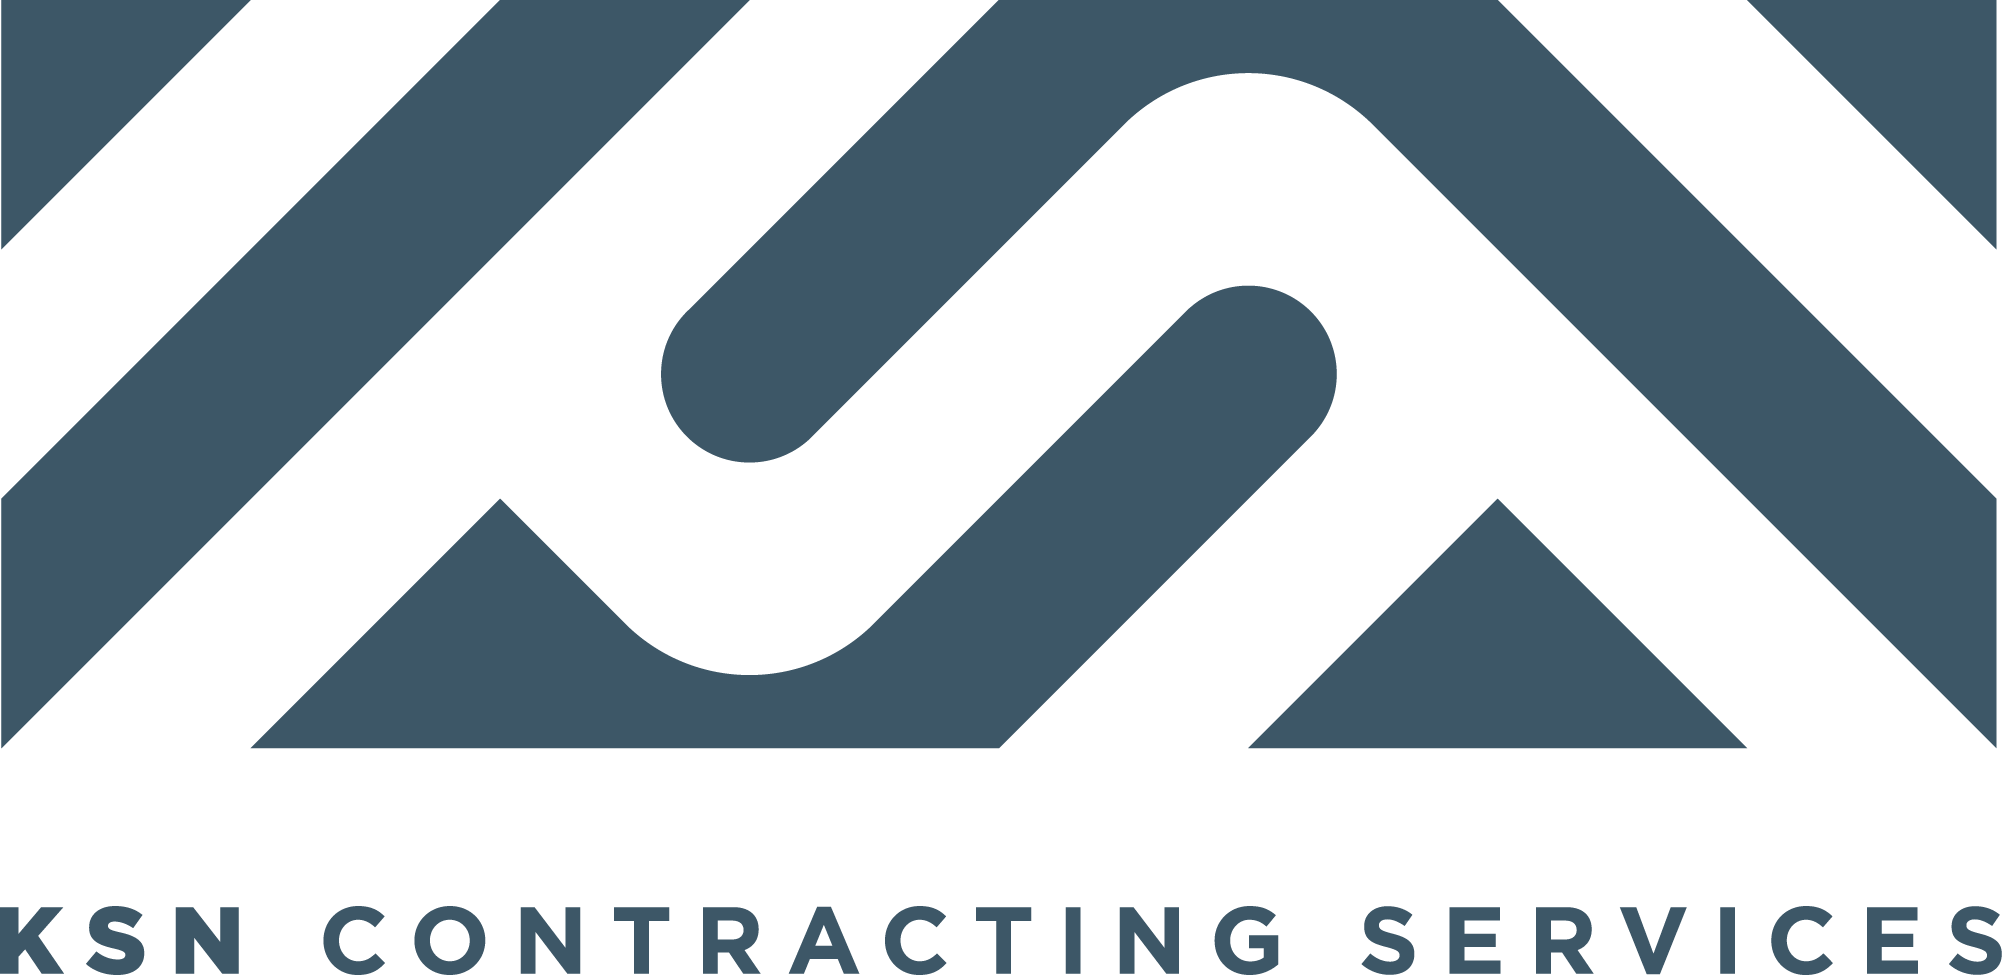 KSN Contracting Services